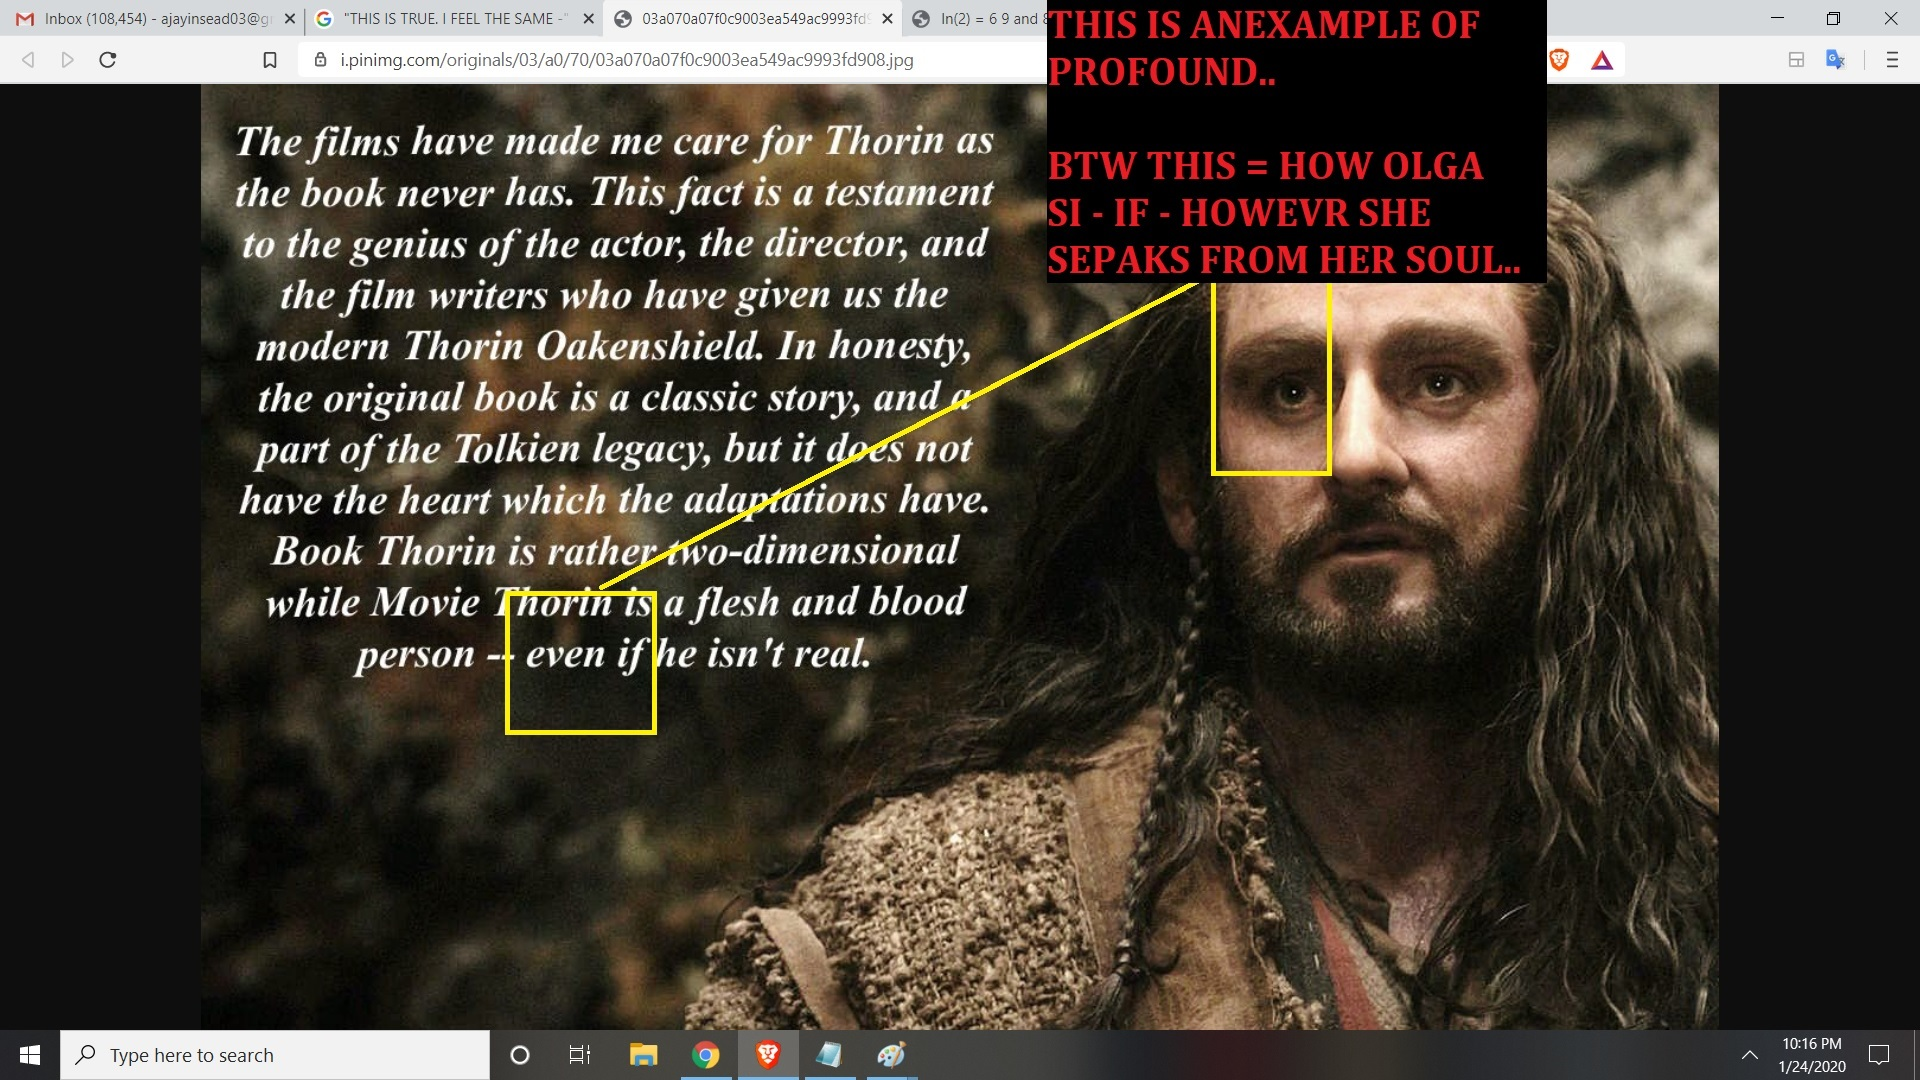 MEANING EVEN F JESUS STORY IS FAKE - AND FAIRY TAE ITS PROFOUND OK BILL MAHER AND OTHERS - AND MANY MILIONS ND BILIONS OF OTHER PEPLES